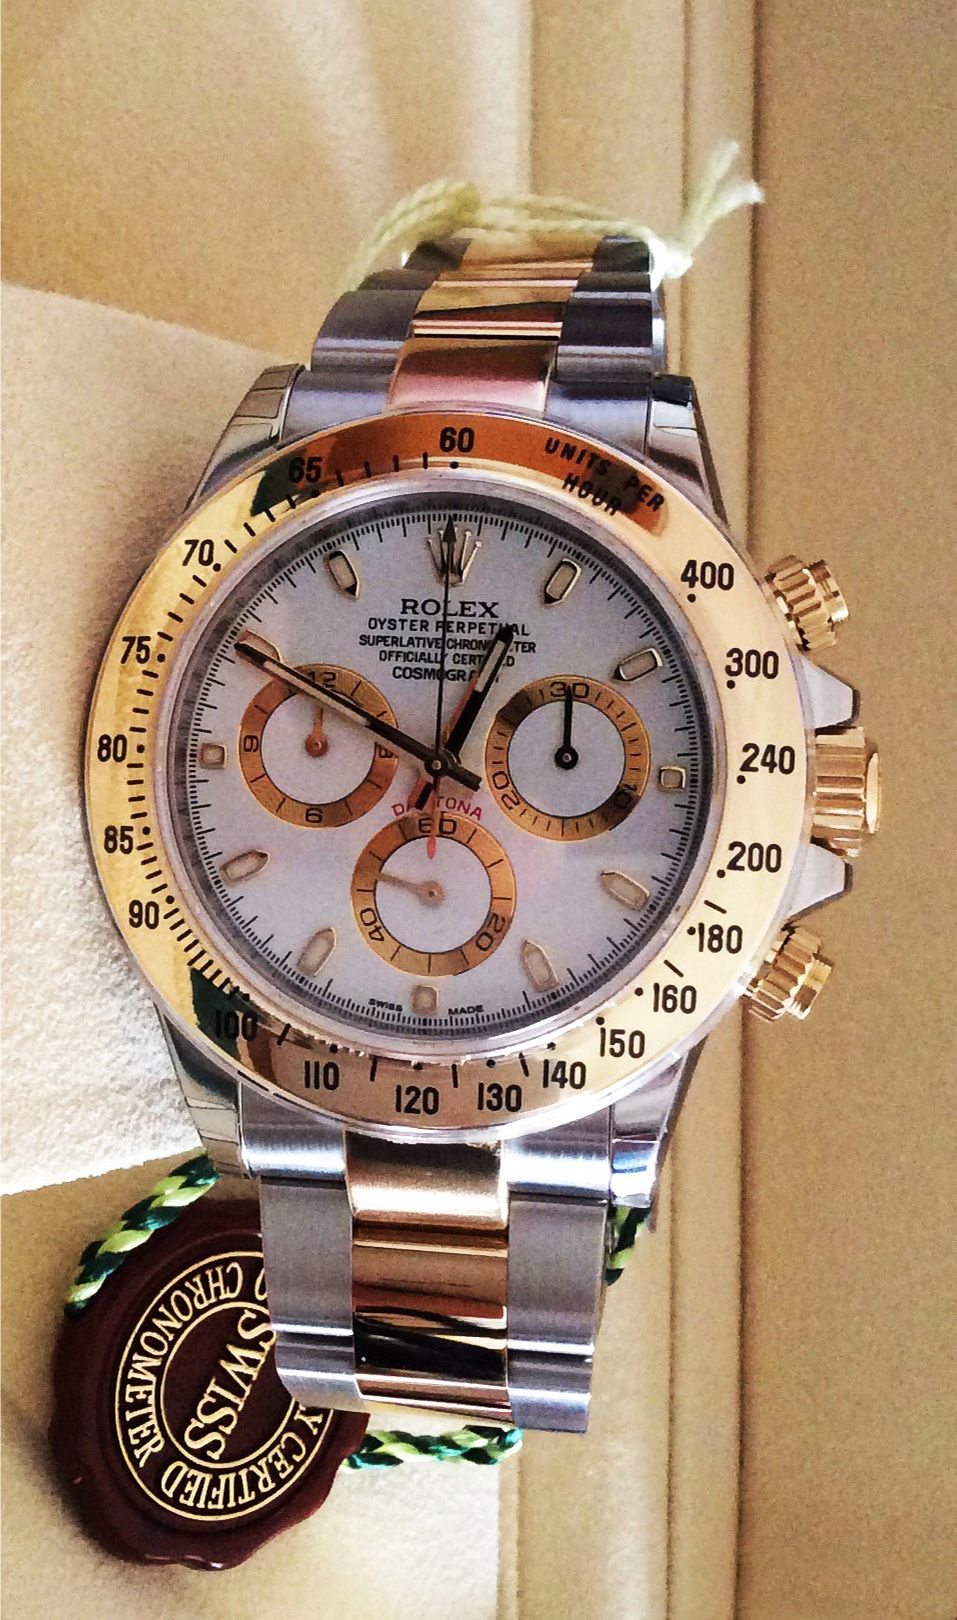 Rolex Daytona 116523 Swisswatchdealers The Central Sweep Seconds Hand Allows An Accurate Reading Of 1 Luxury Watches For Men Rolex Watches Luxury Watches